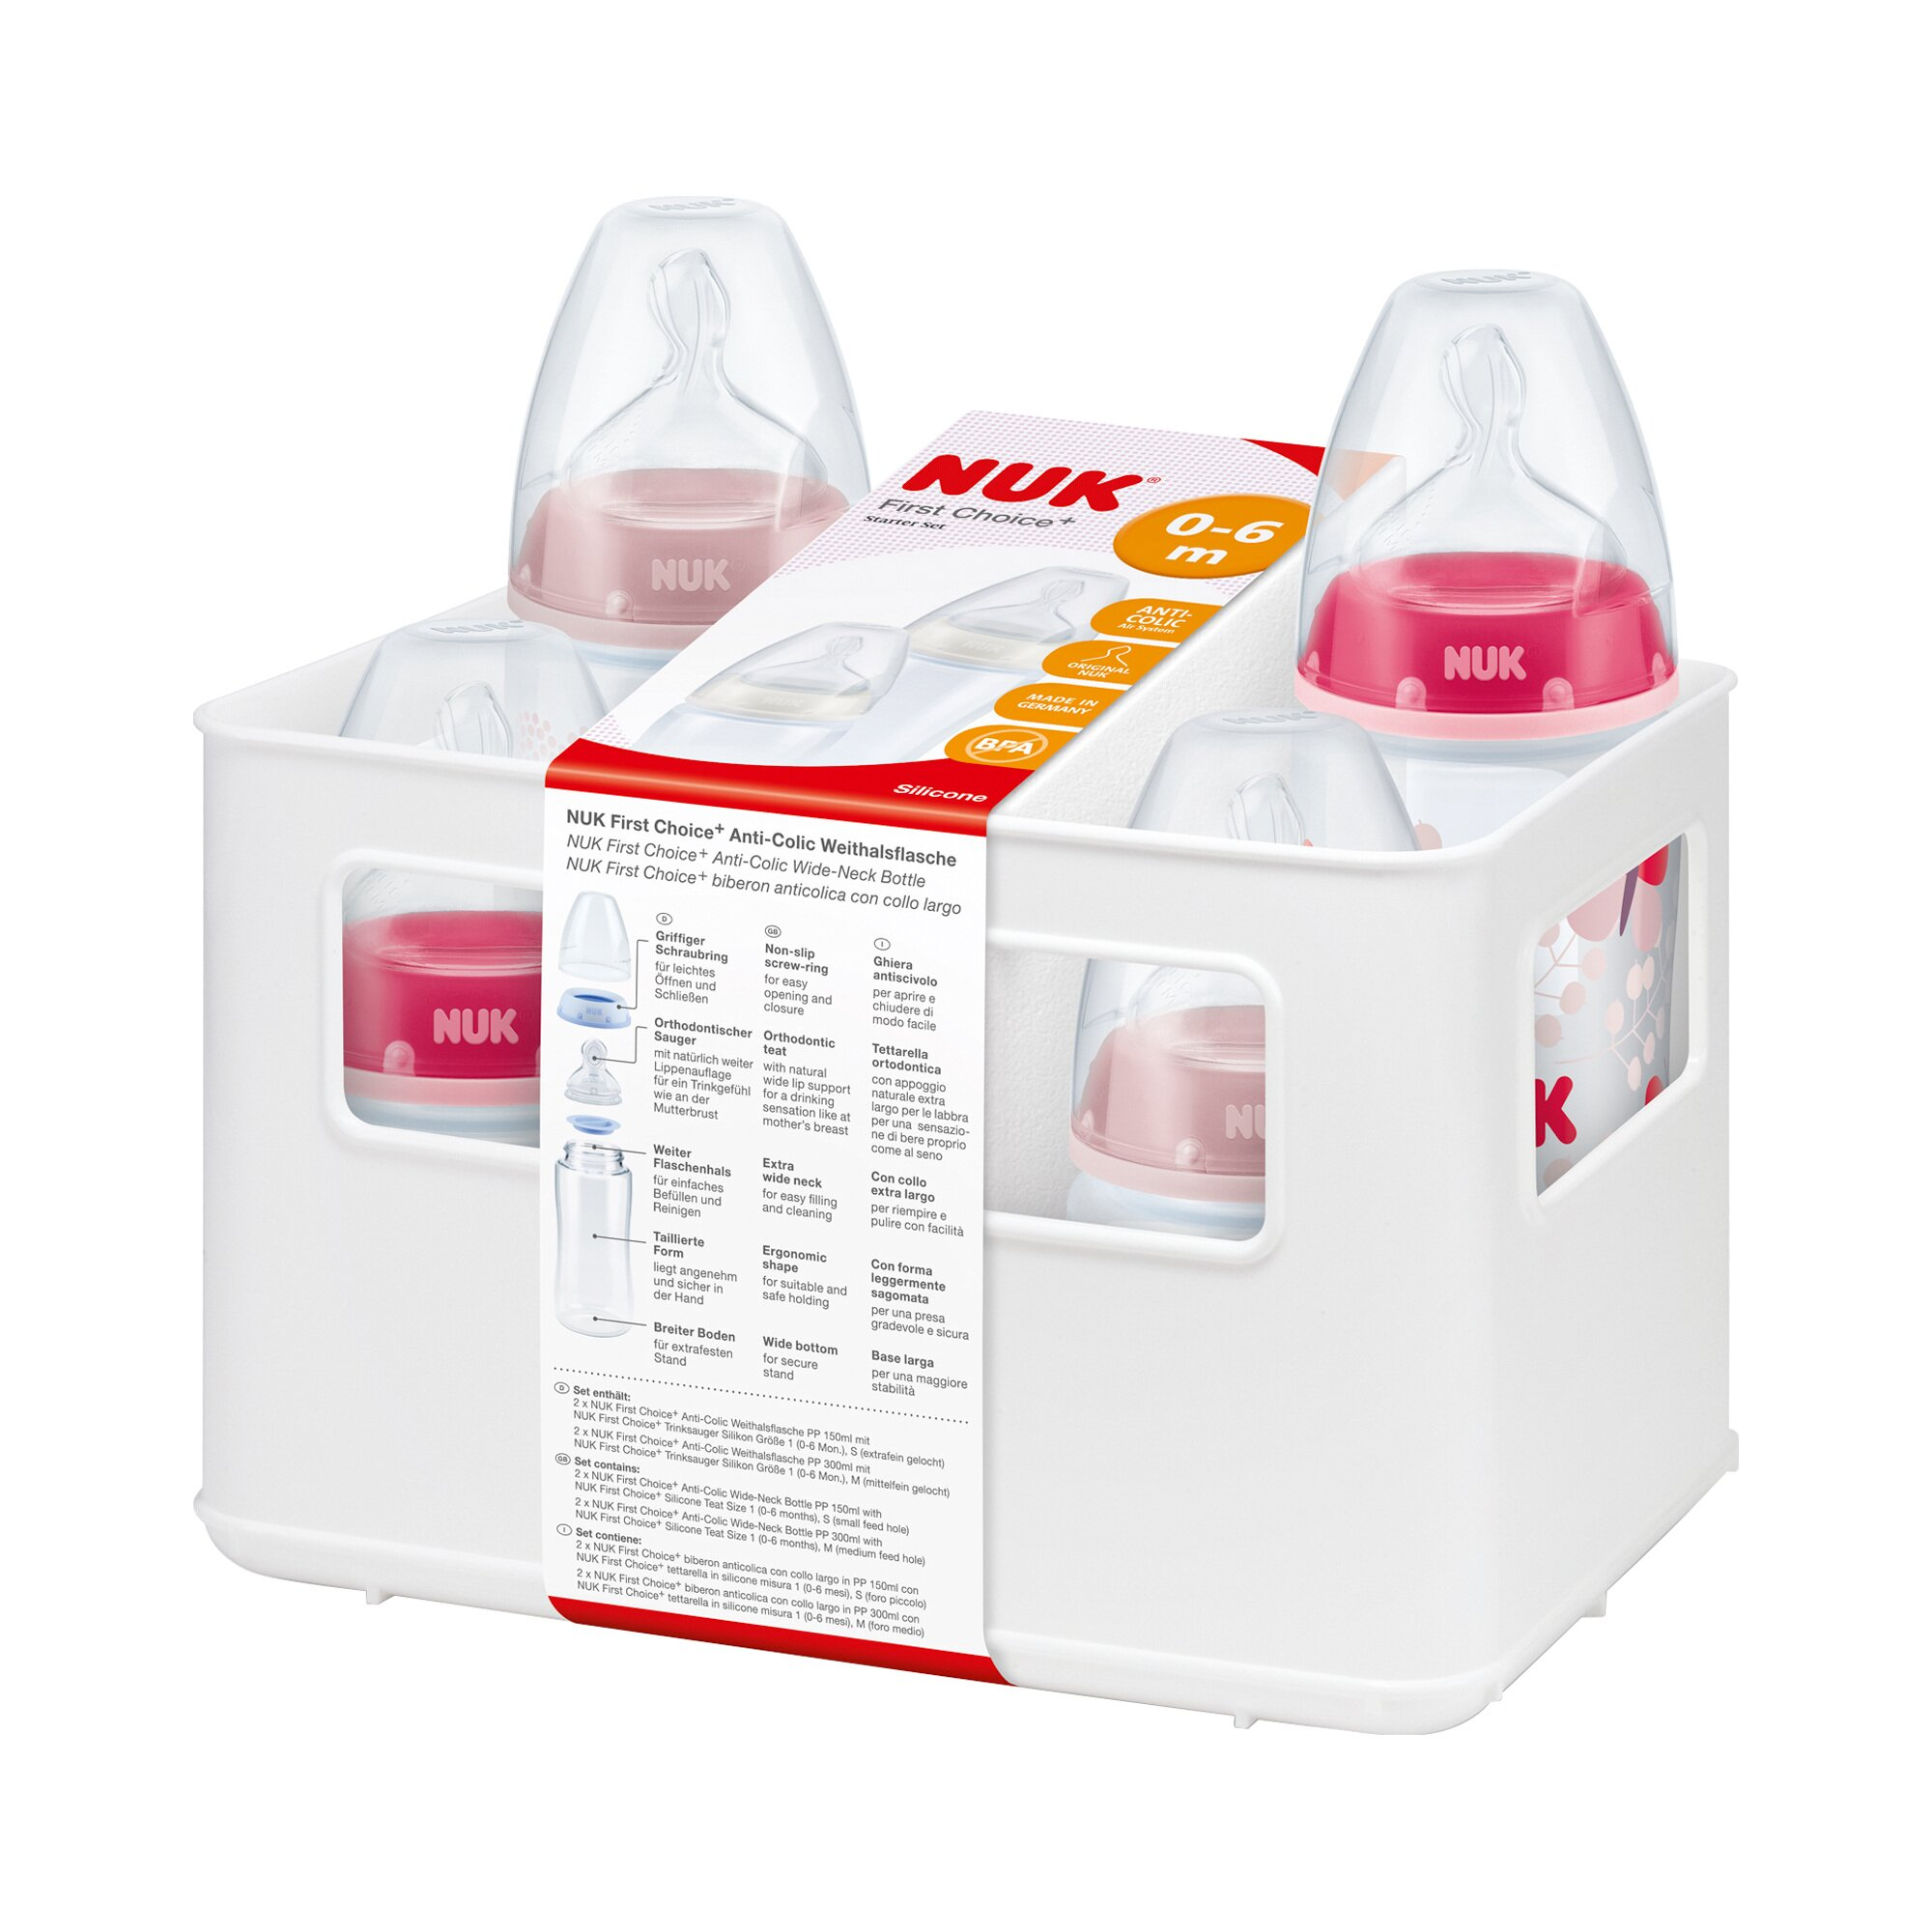 nuk-5-tlg-first-choice-starter-set-150-300ml-0-6m